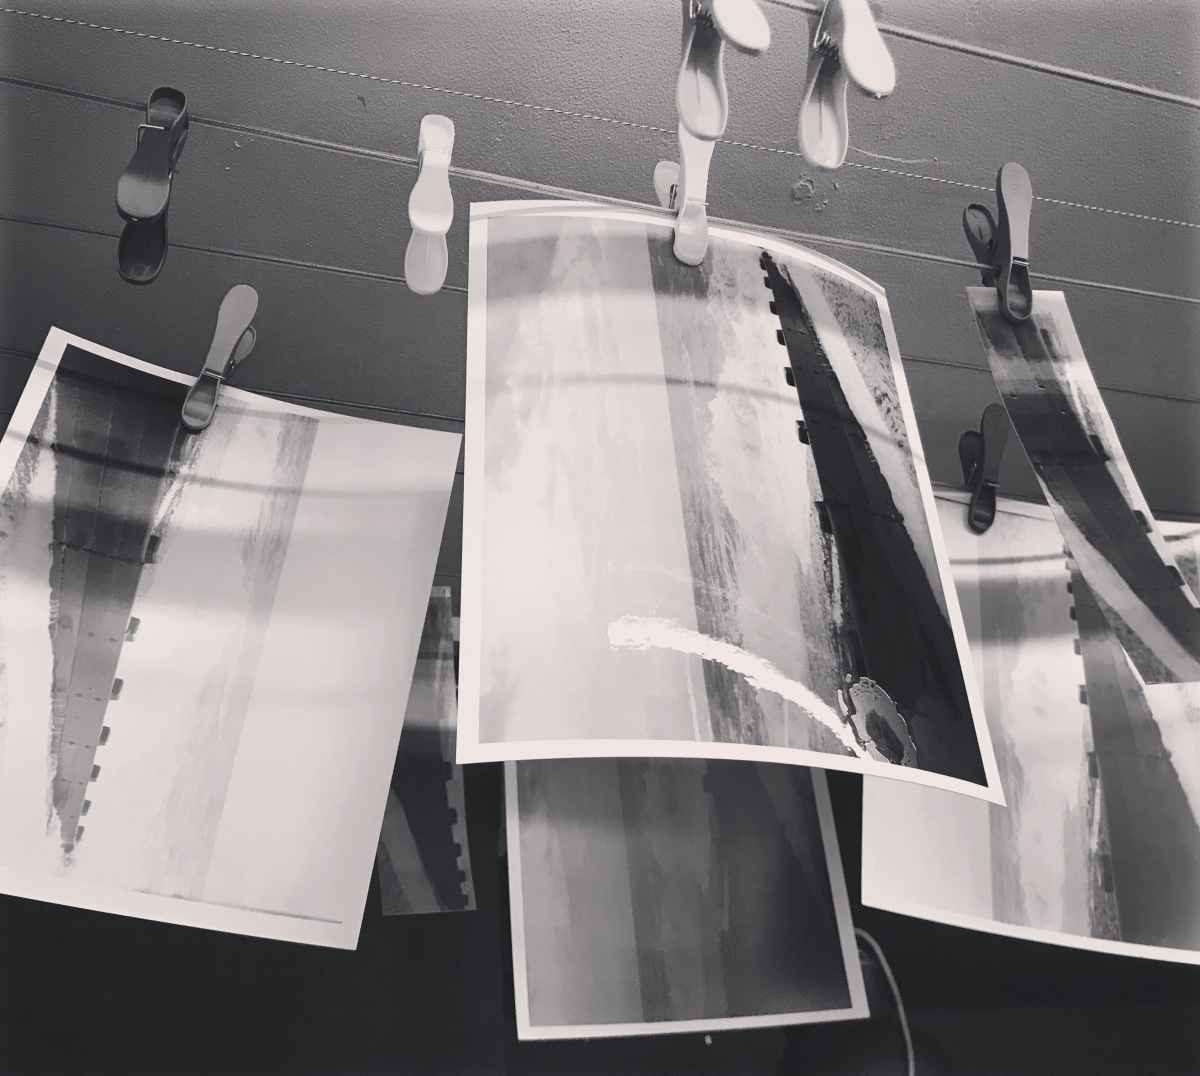 Developing Prints in the Darkroom